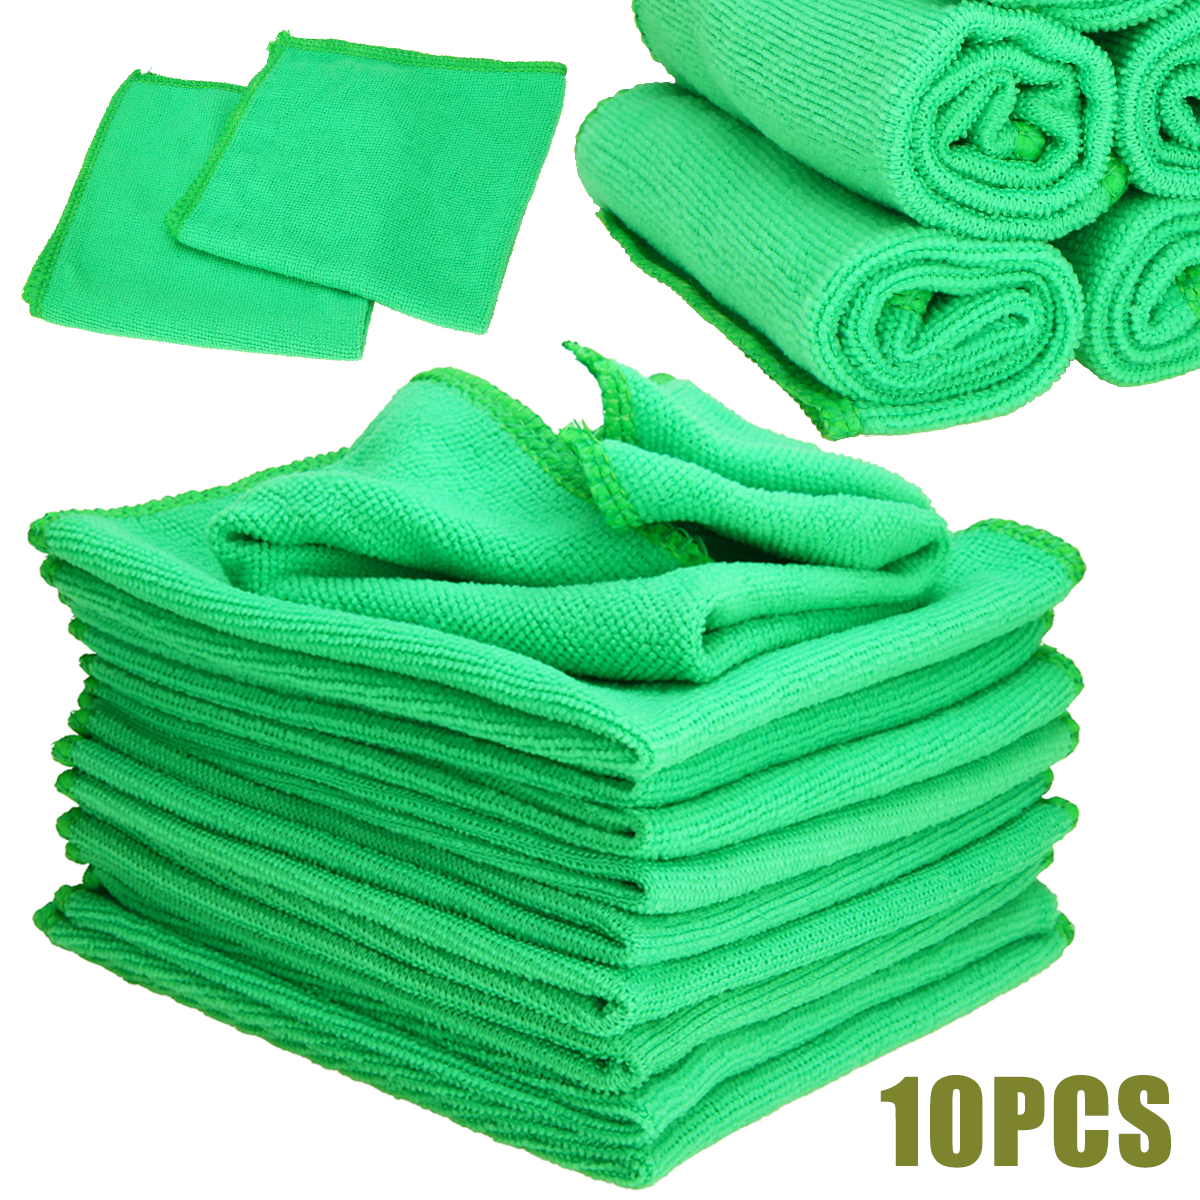 Mayitr 10 Pcs Car Microfiber Clean Towel 25*25CM Car Soft Microfiber Absorbent Wash Cleaning Polish Towel Cloth-in Sponges, Cloths & Brushes from Automobiles & Motorcycles